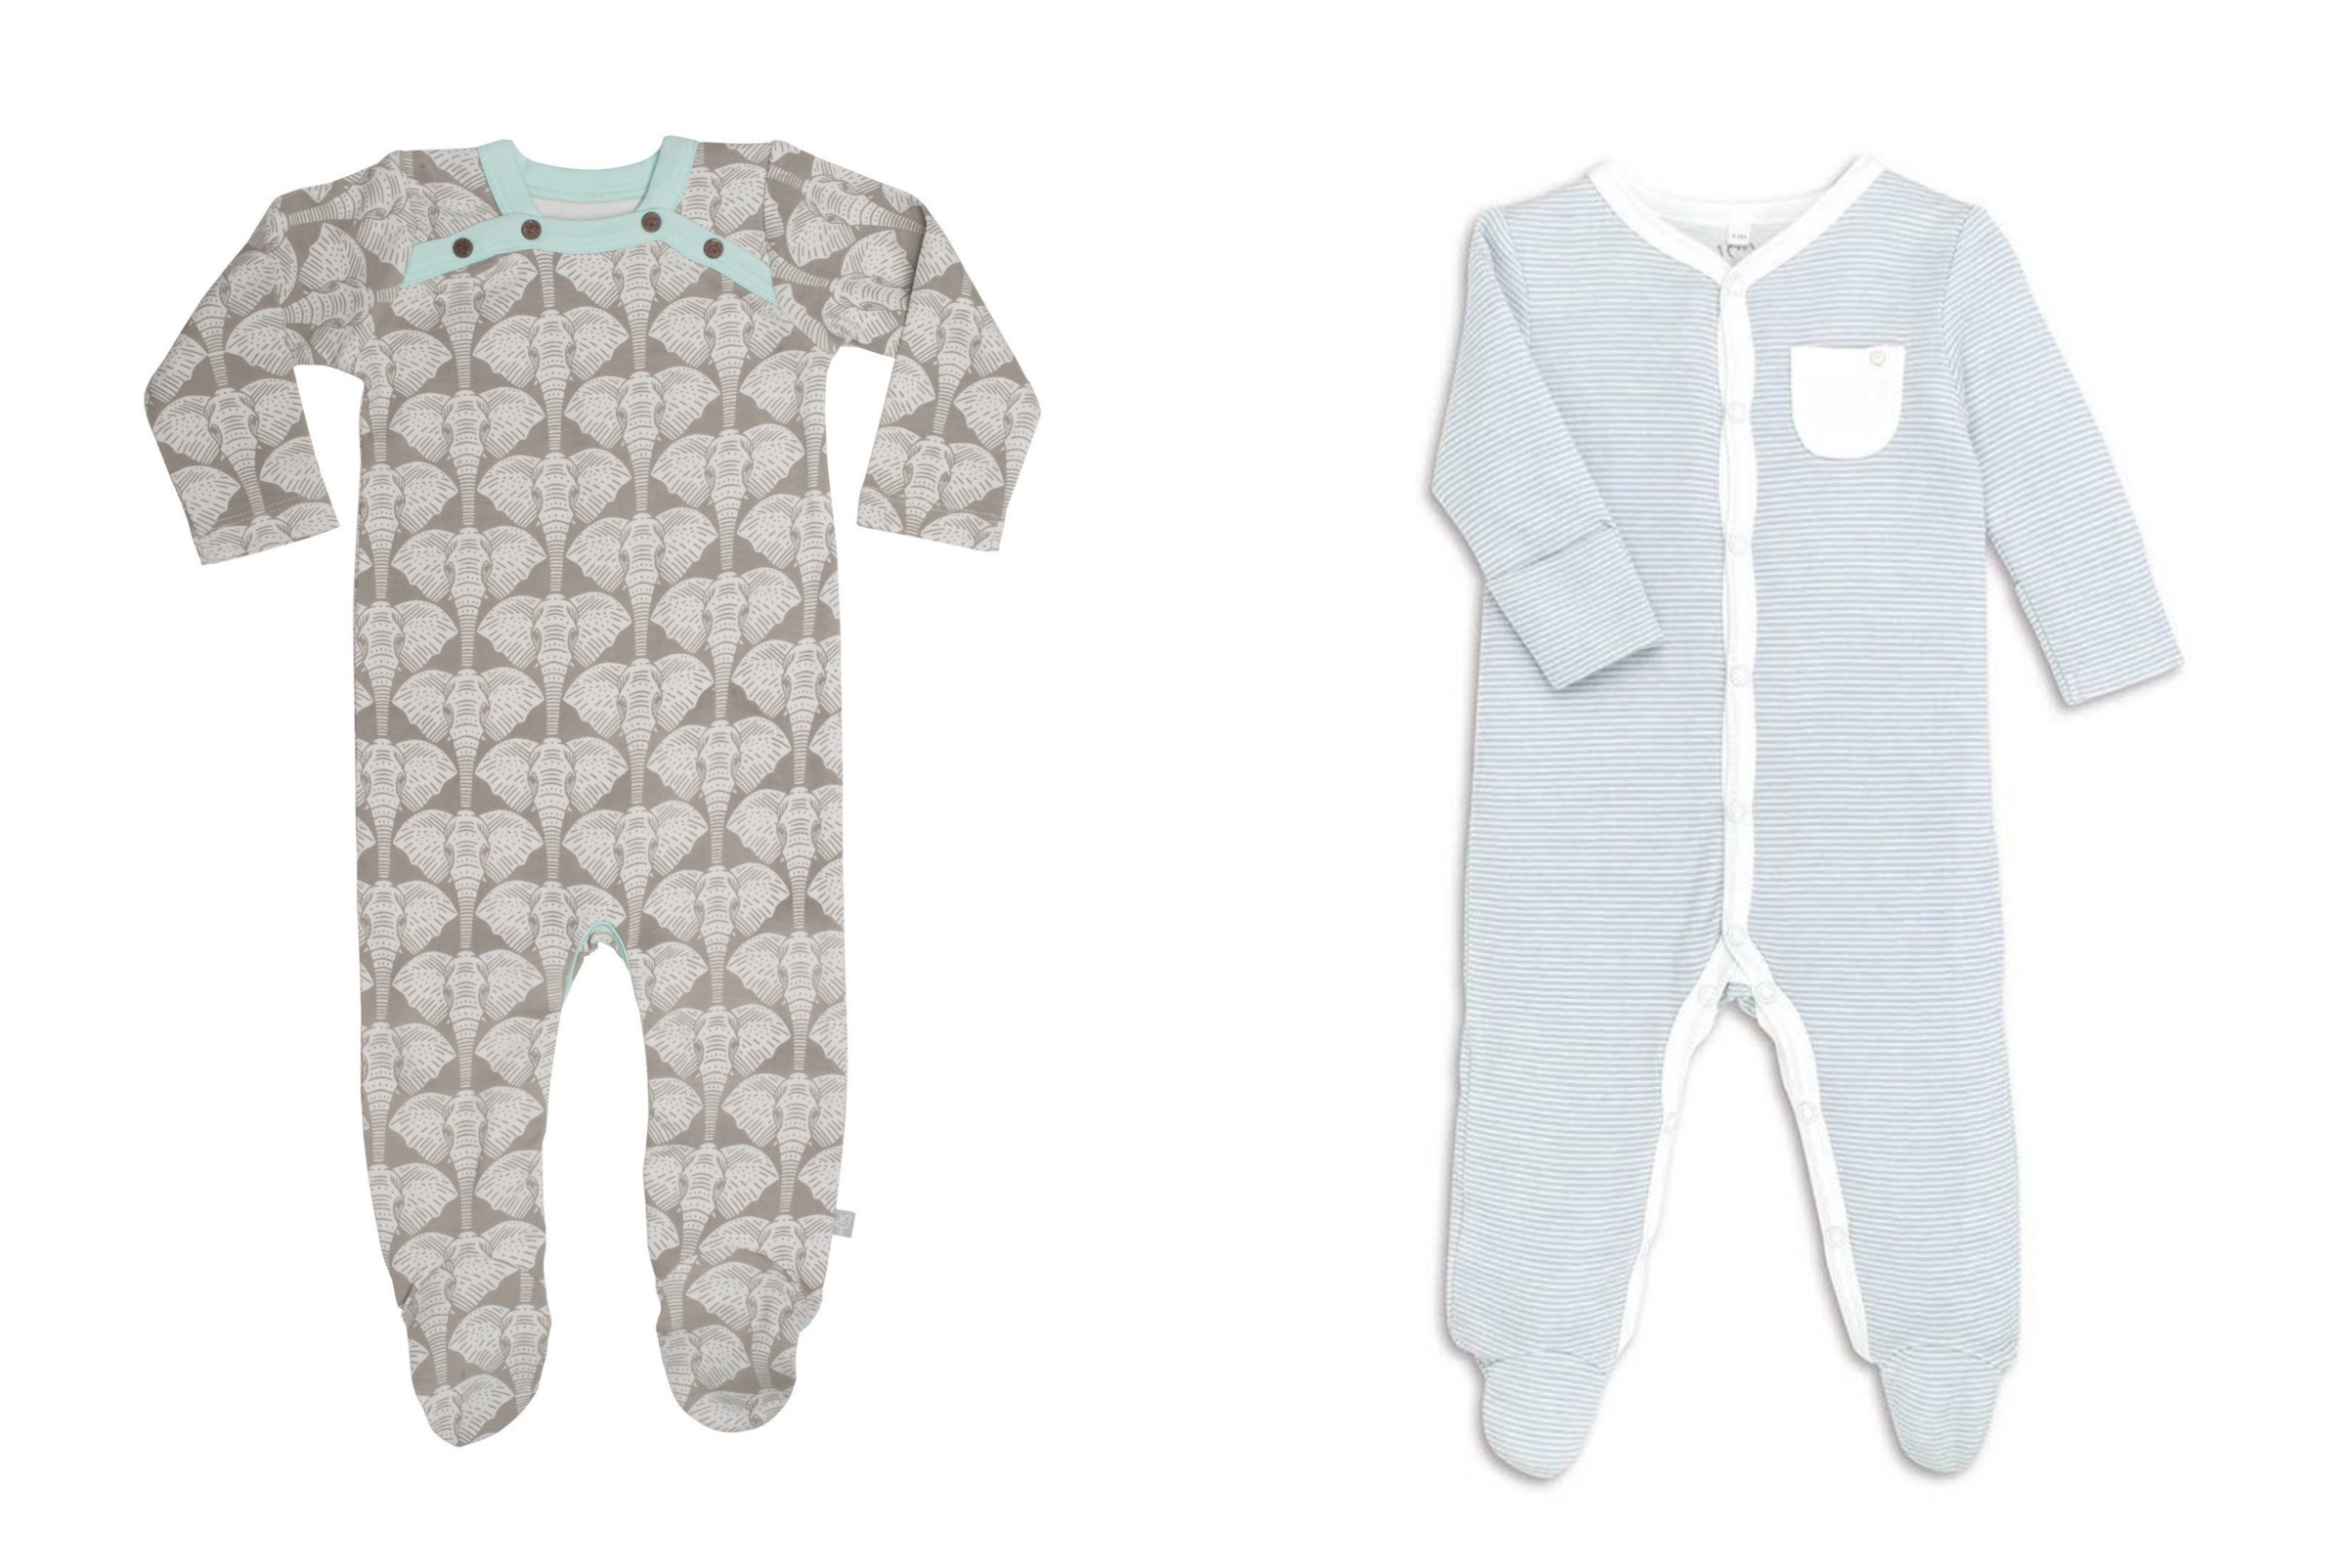 Natural Baby Shower - Sleepsuits